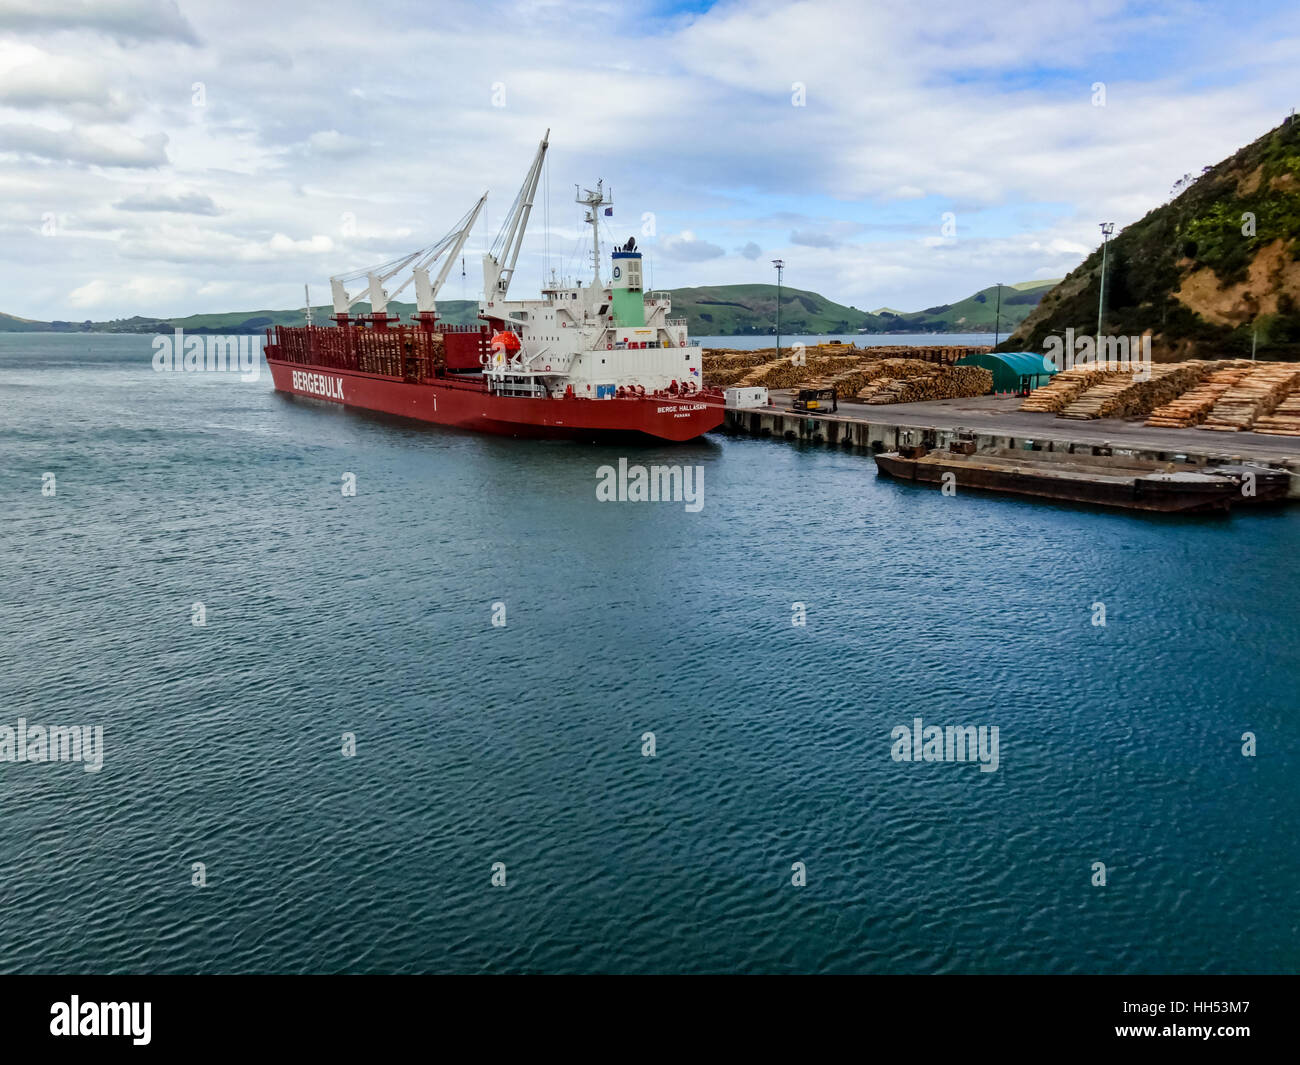 Wooden logs await loading onto ship for export at Port Chalmers, Dunedin, New Zealand - Stock Image